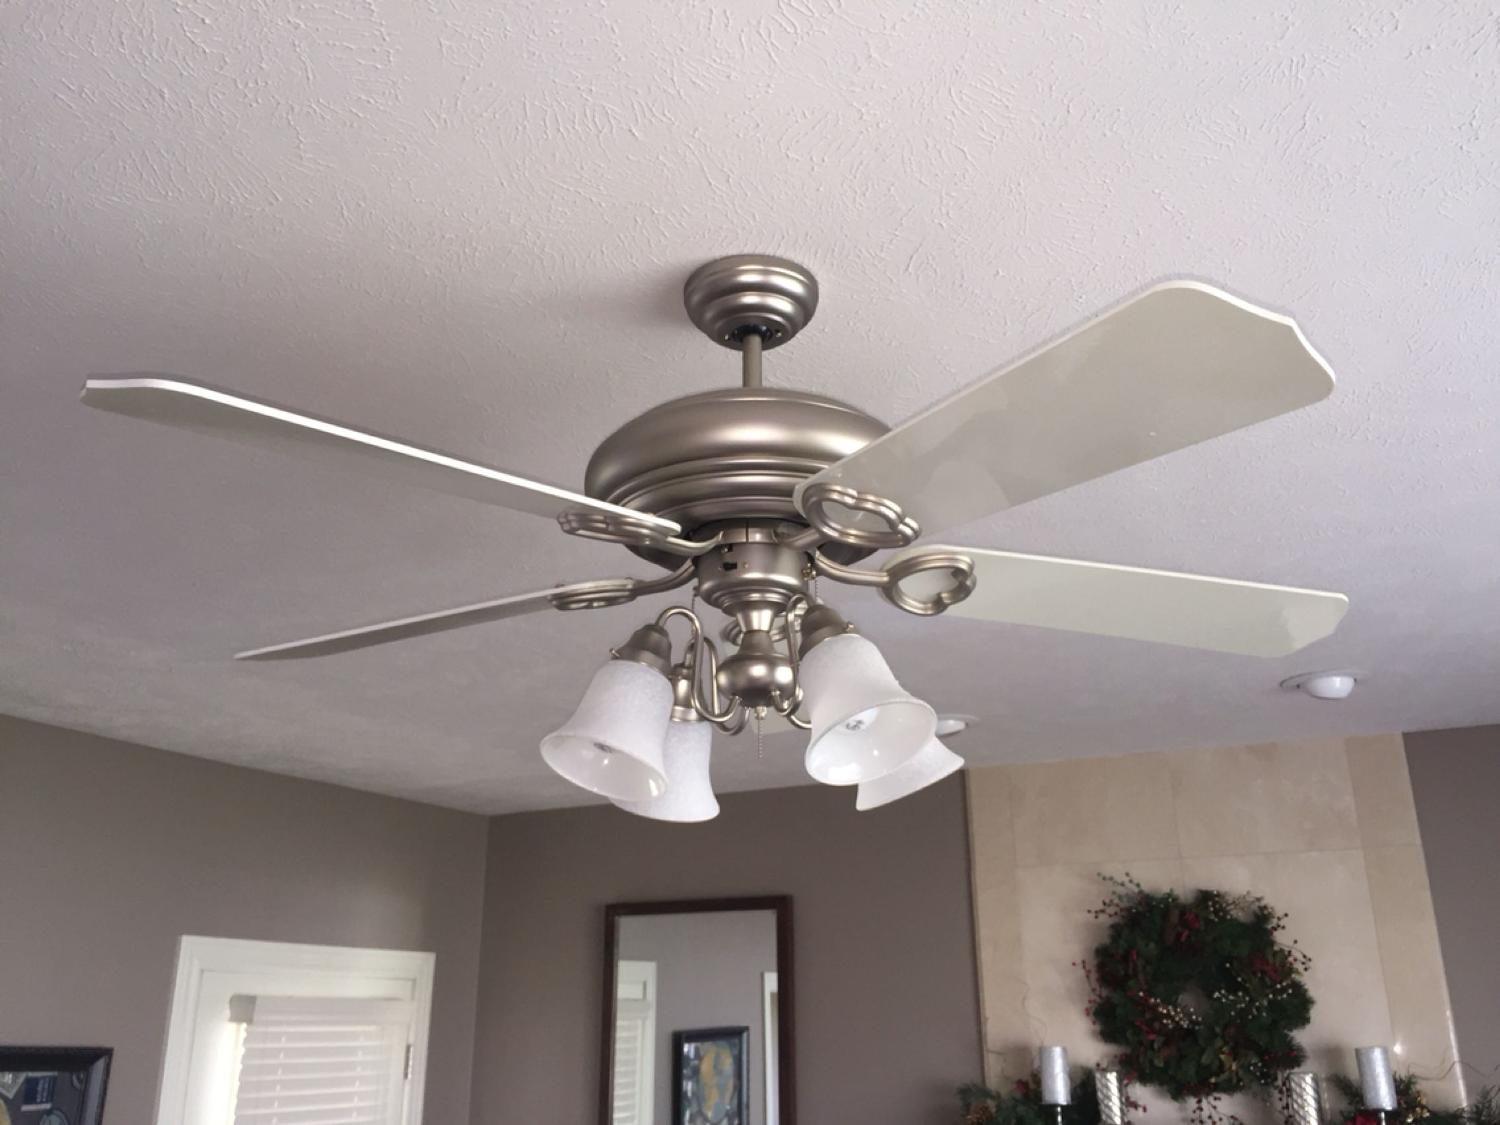 Find more gorgeous regency ceiling fan less than 6 months old nickel find more gorgeous regency ceiling fan less than 6 months old nickel and white for sale at up to 90 off aloadofball Images